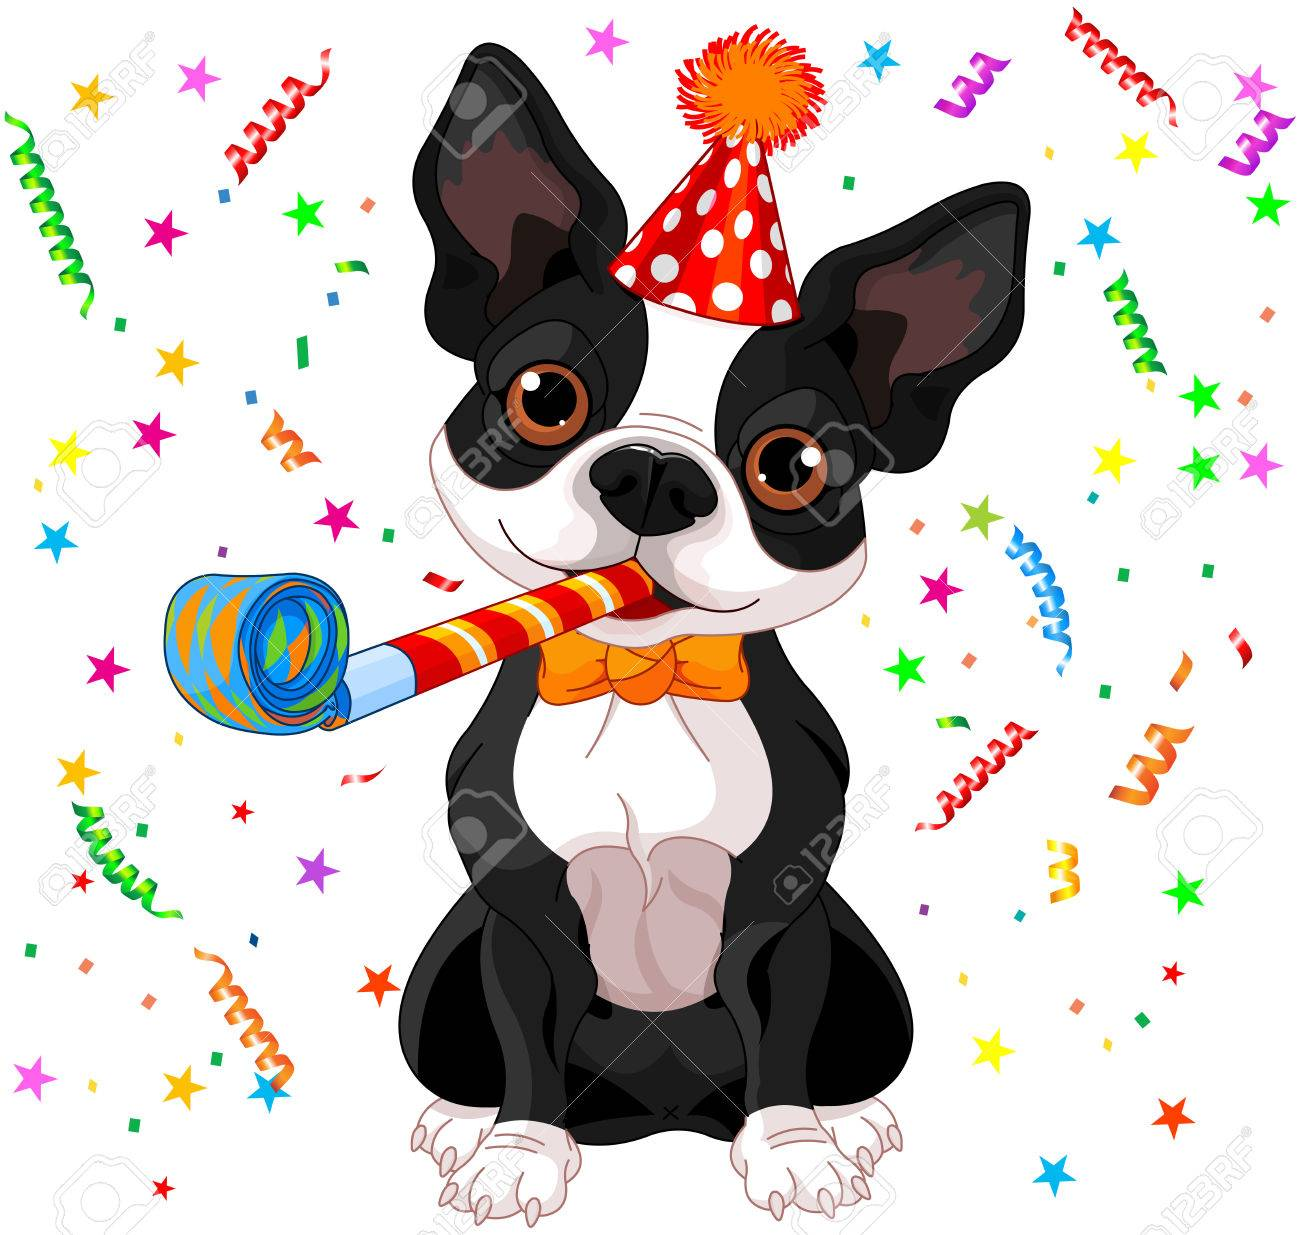 Pourquoi me suit-il partout? - Page 2 35588778-illustration-of-cute-boston-terrier-celebrating